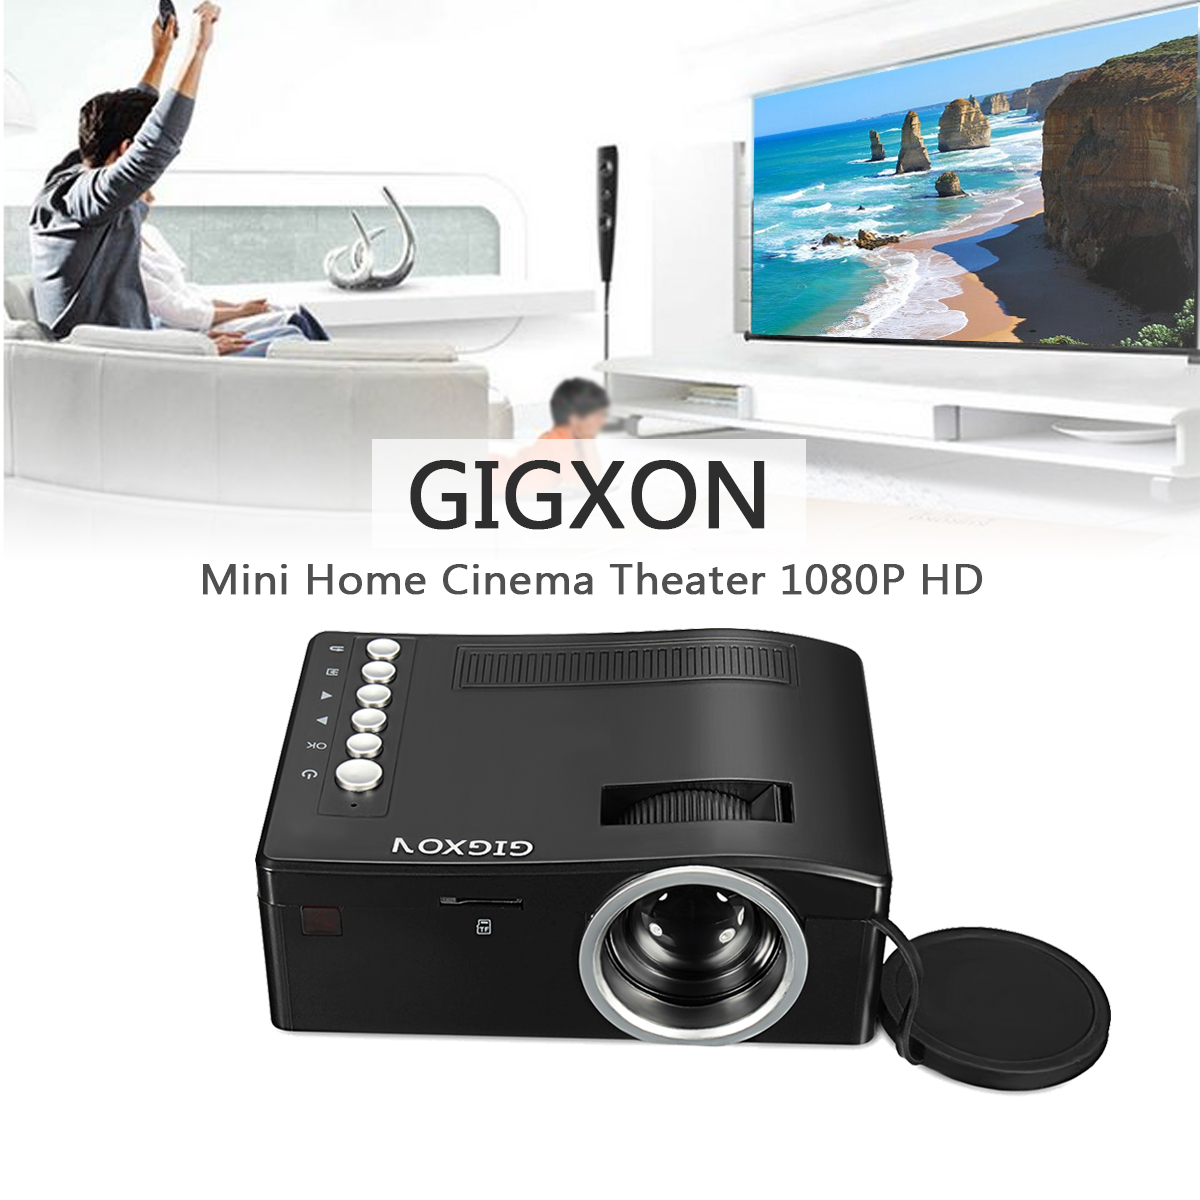 Gigxon G18 LED 1080P 50 Lumens 320x180 Home Theater Mini Portable Projector HDMI AV USB SD TF